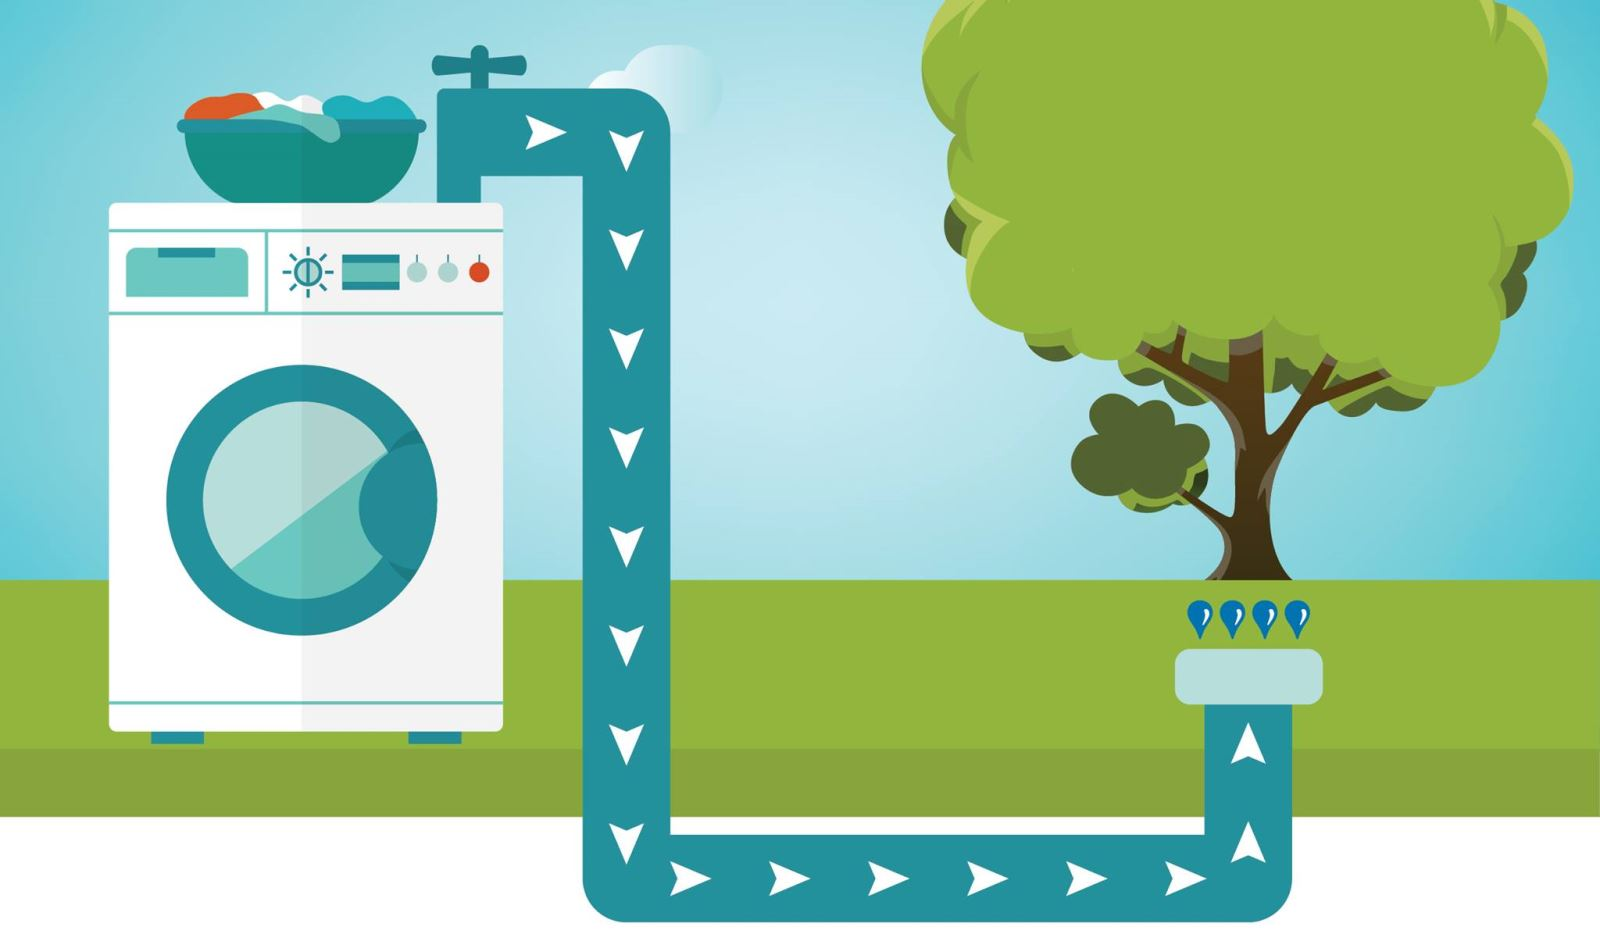 FREE LAUNDRY-TO-LANDSCAPE GRAY WATER KIT